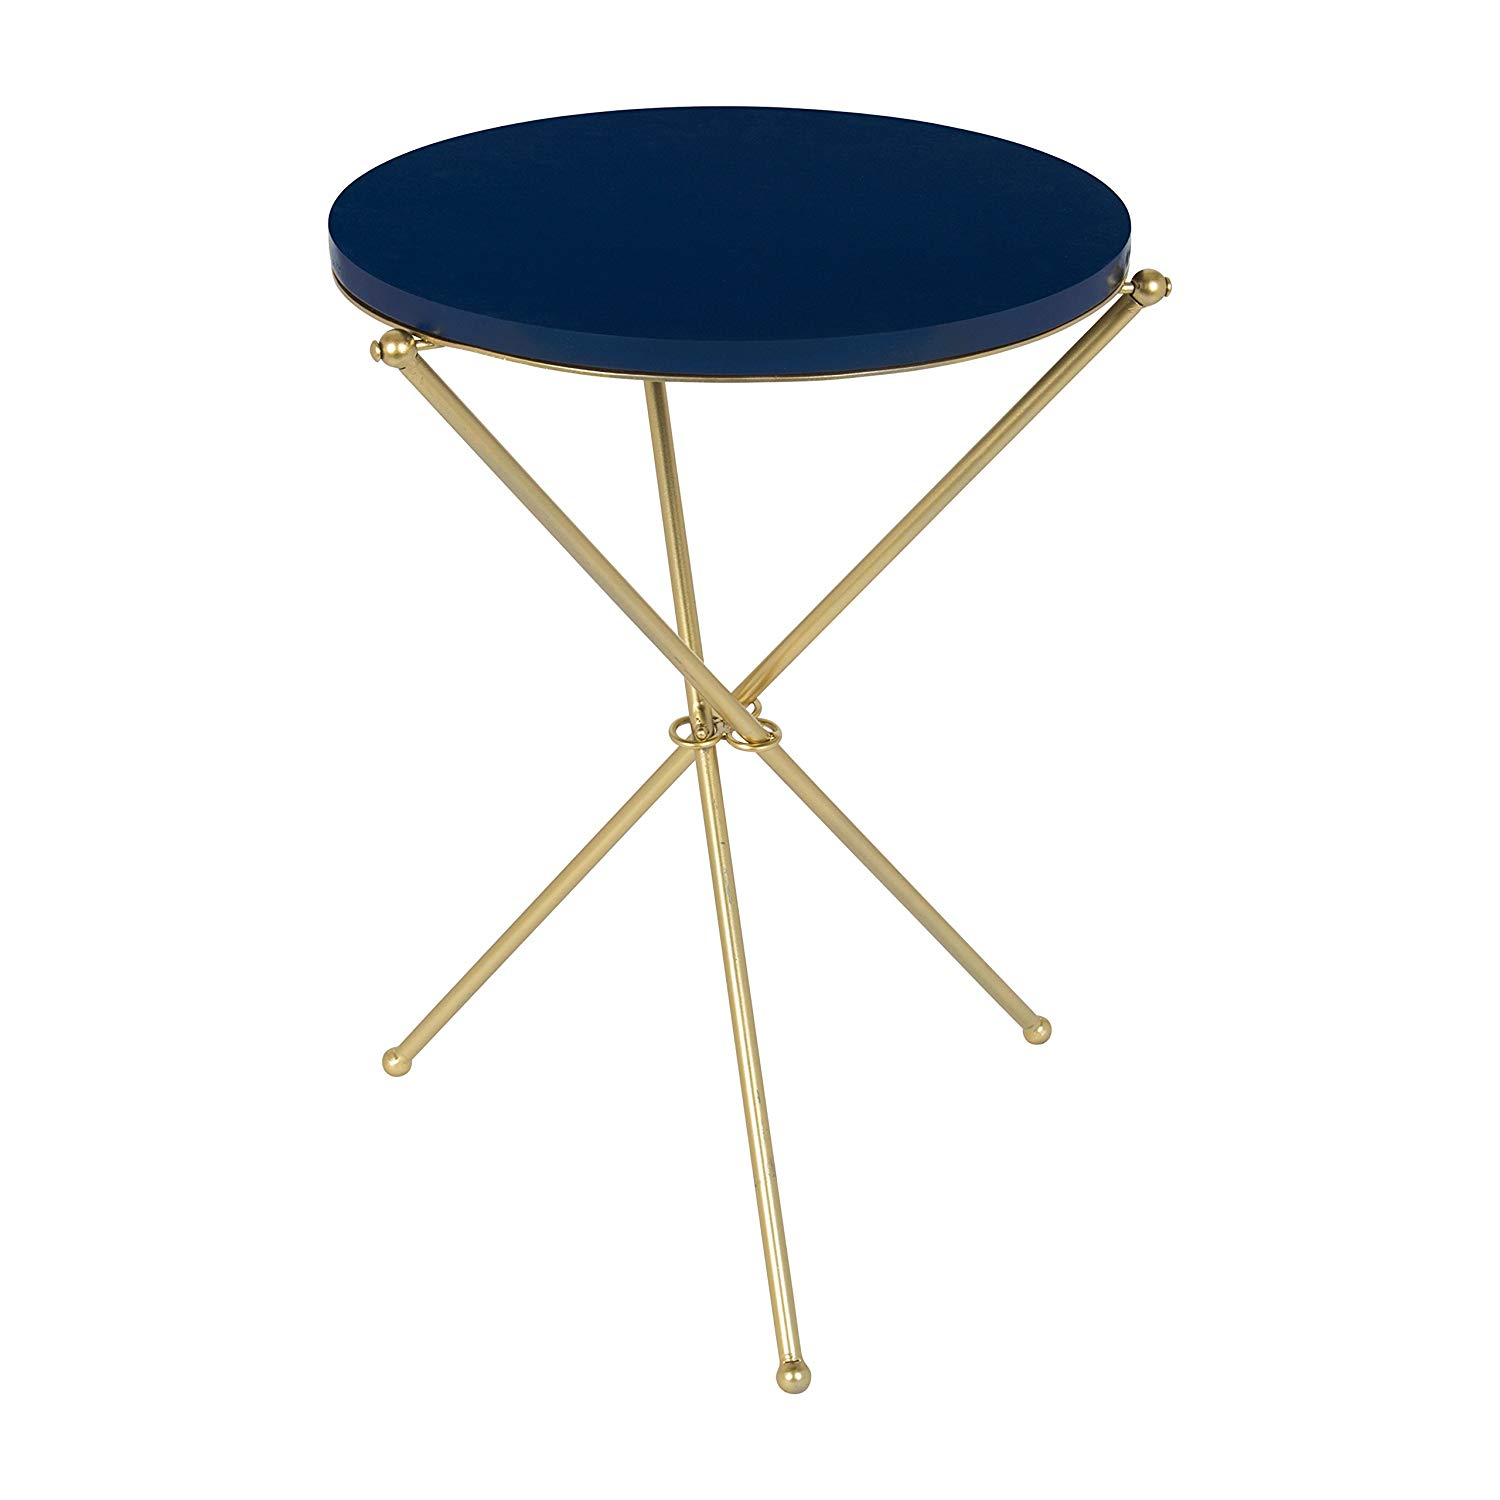 kate and laurel emellyn modern luxe folding side accent tall gold table with round painted wooden top metal tripod legs navy blue inch diameter inches barnwood coffee set nesting